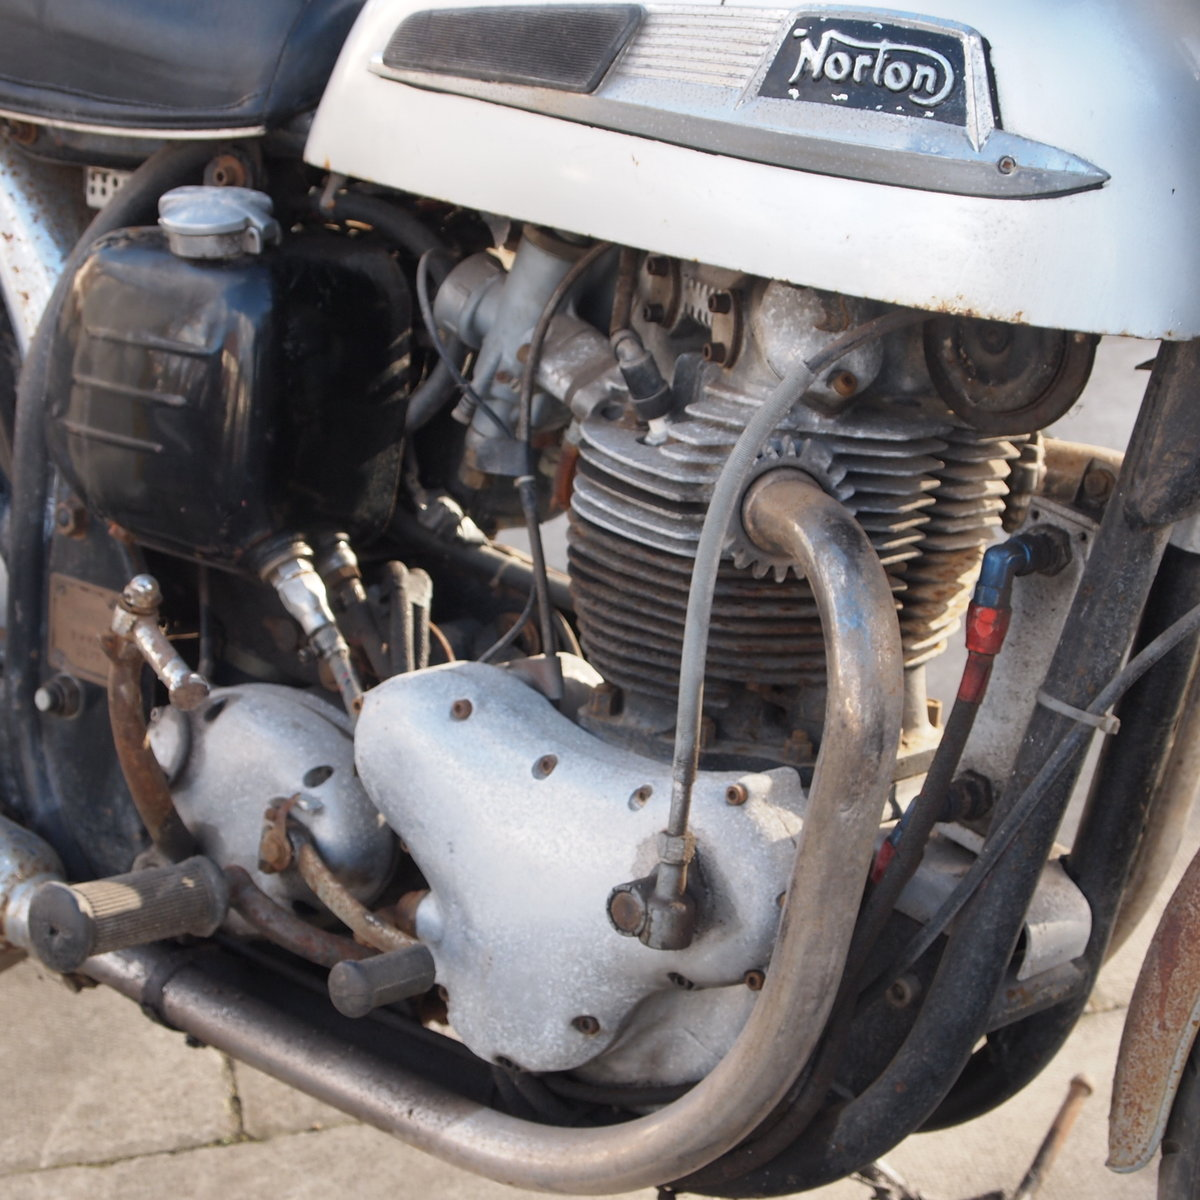 1965 Norton Atlas 750cc Project / Last Used In 2010. SOLD (picture 3 of 6)